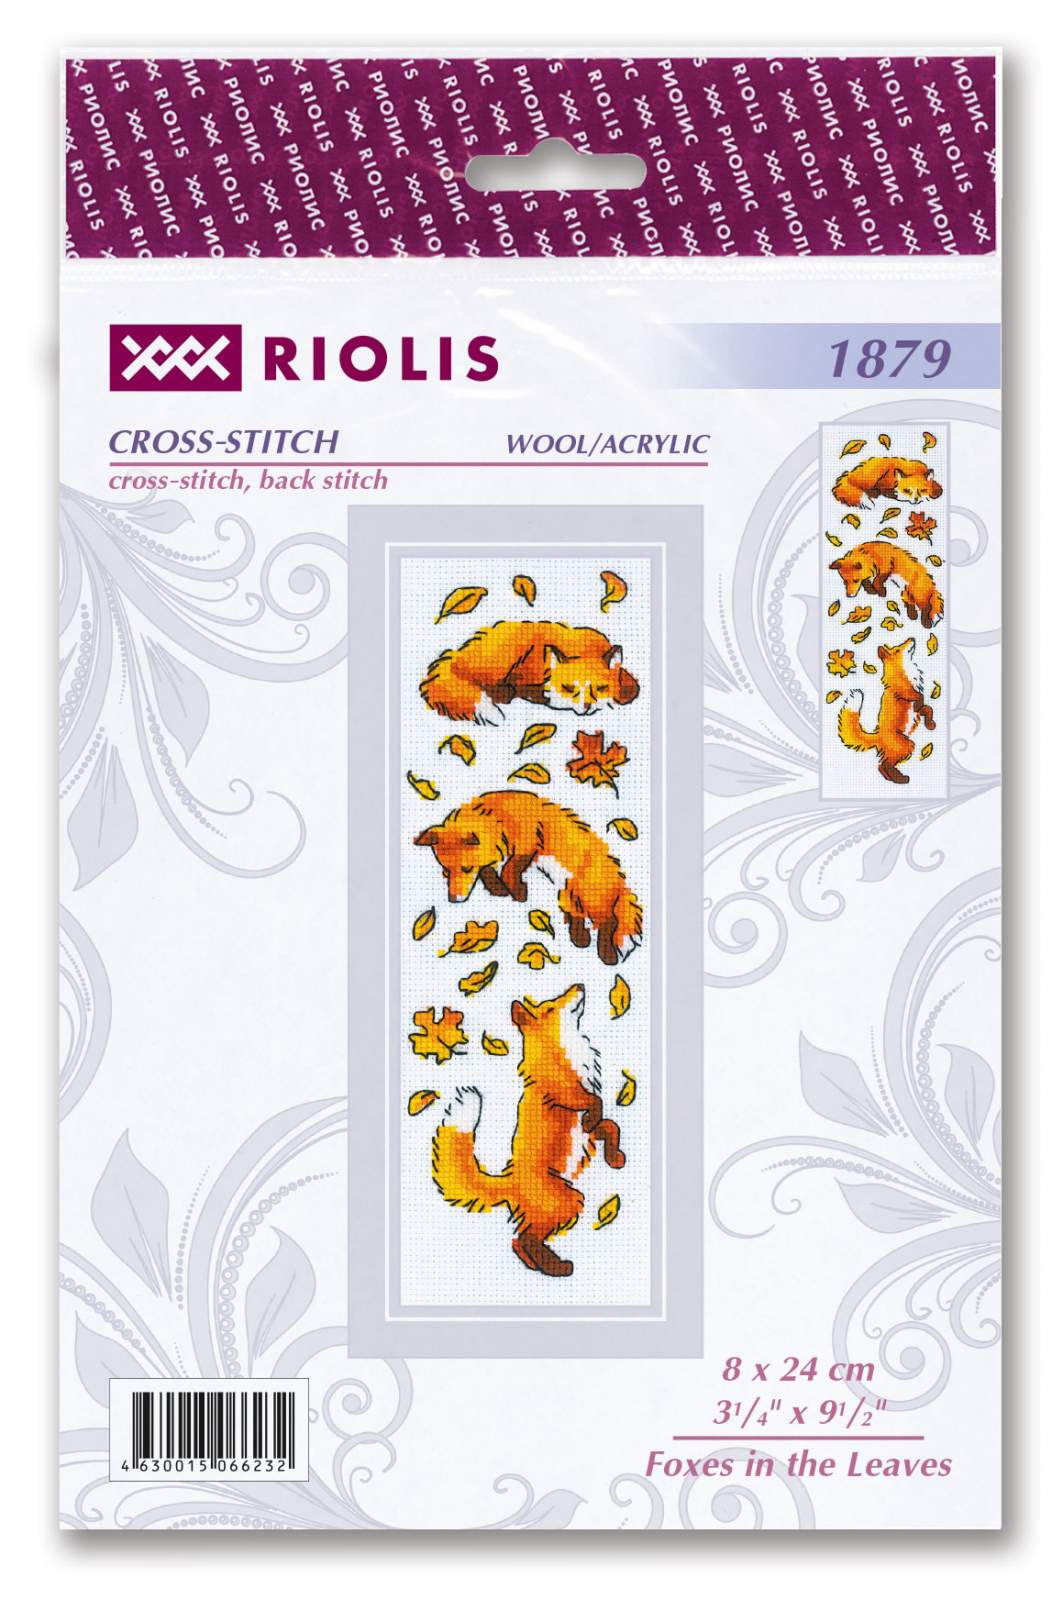 Counted Cross Stitch Kit RIOLIS Foxes in the Leaves